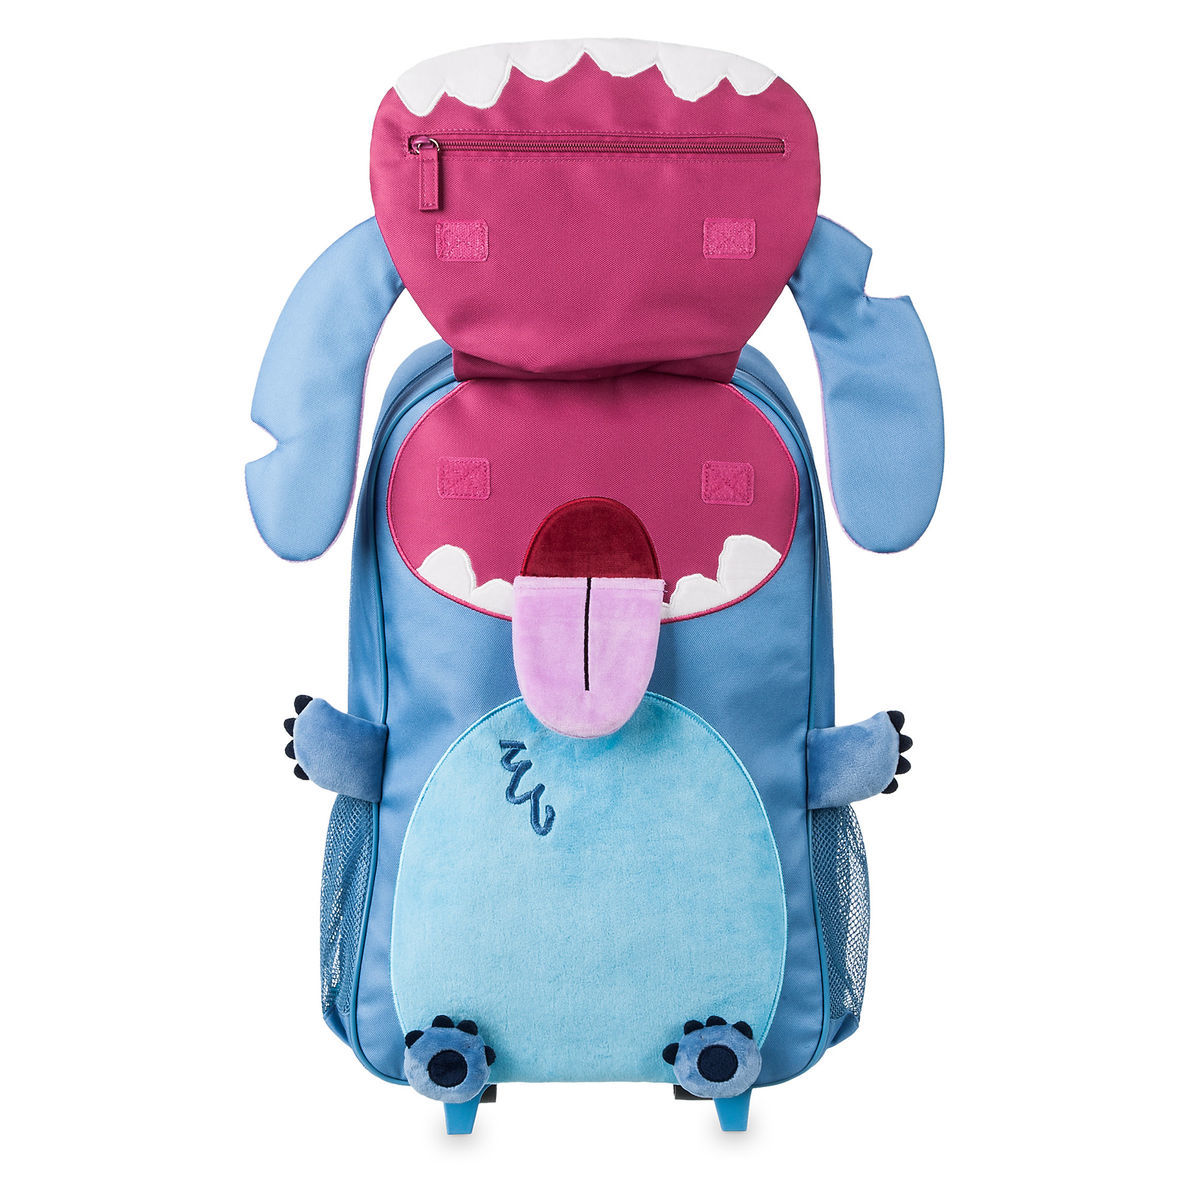 84ff3b54508f Stitch Rolling Backpack - Personalizable